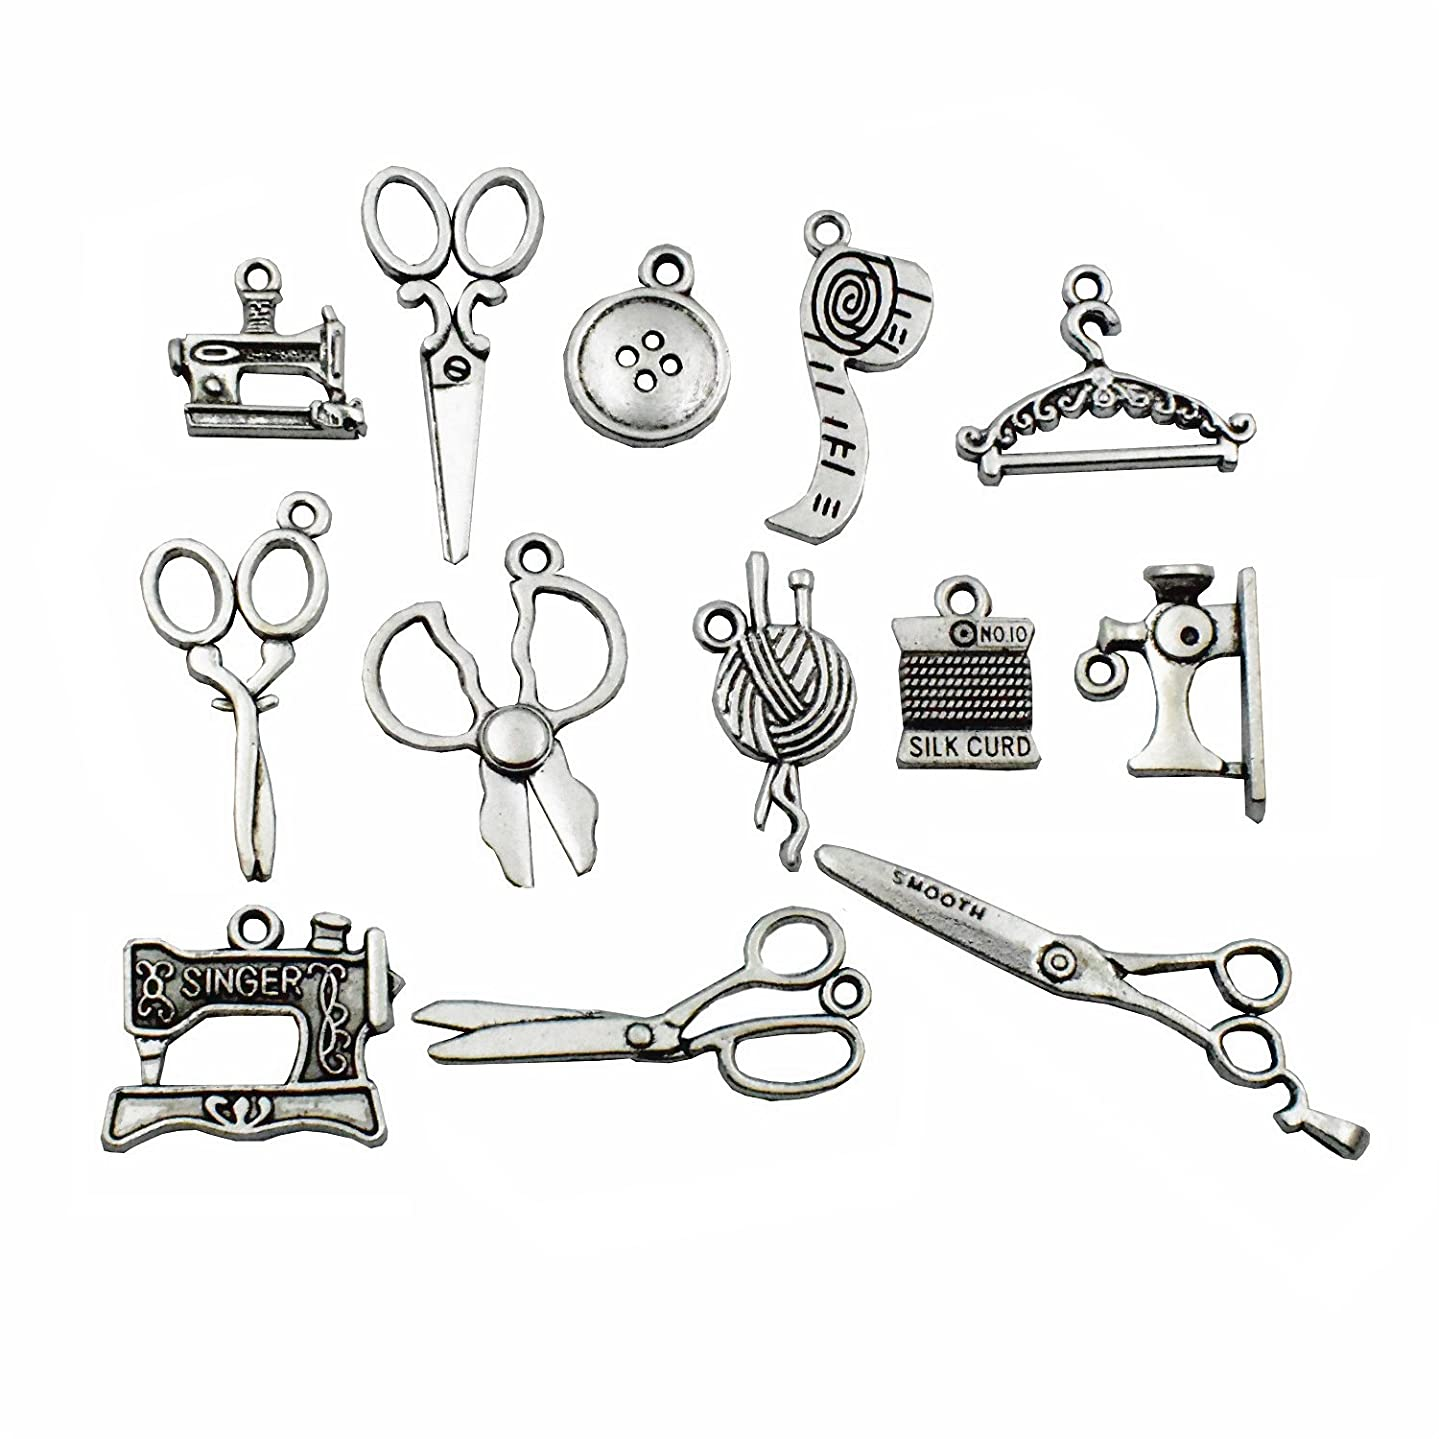 Sewing Charms Collection-100g about (60-65pcs ) Antique Silver Craft Supplies Sewing Charms Pendants for Crafting, Jewelry Findings Making Accessory For DIY Necklace Bracelet M3 (Sewing Collection)